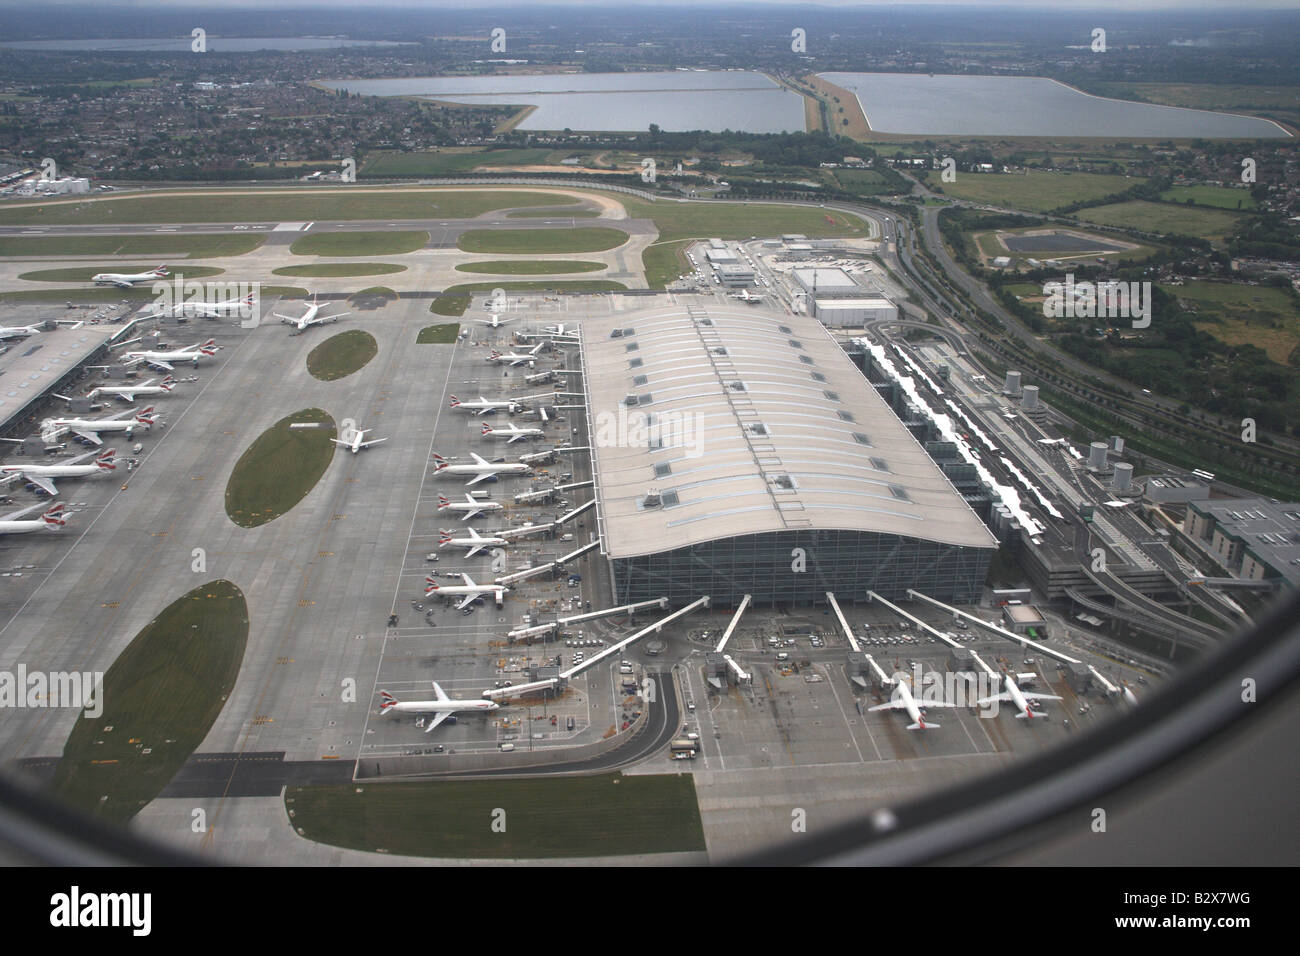 Heathrow airport Terminal 5 areal view - Stock Image